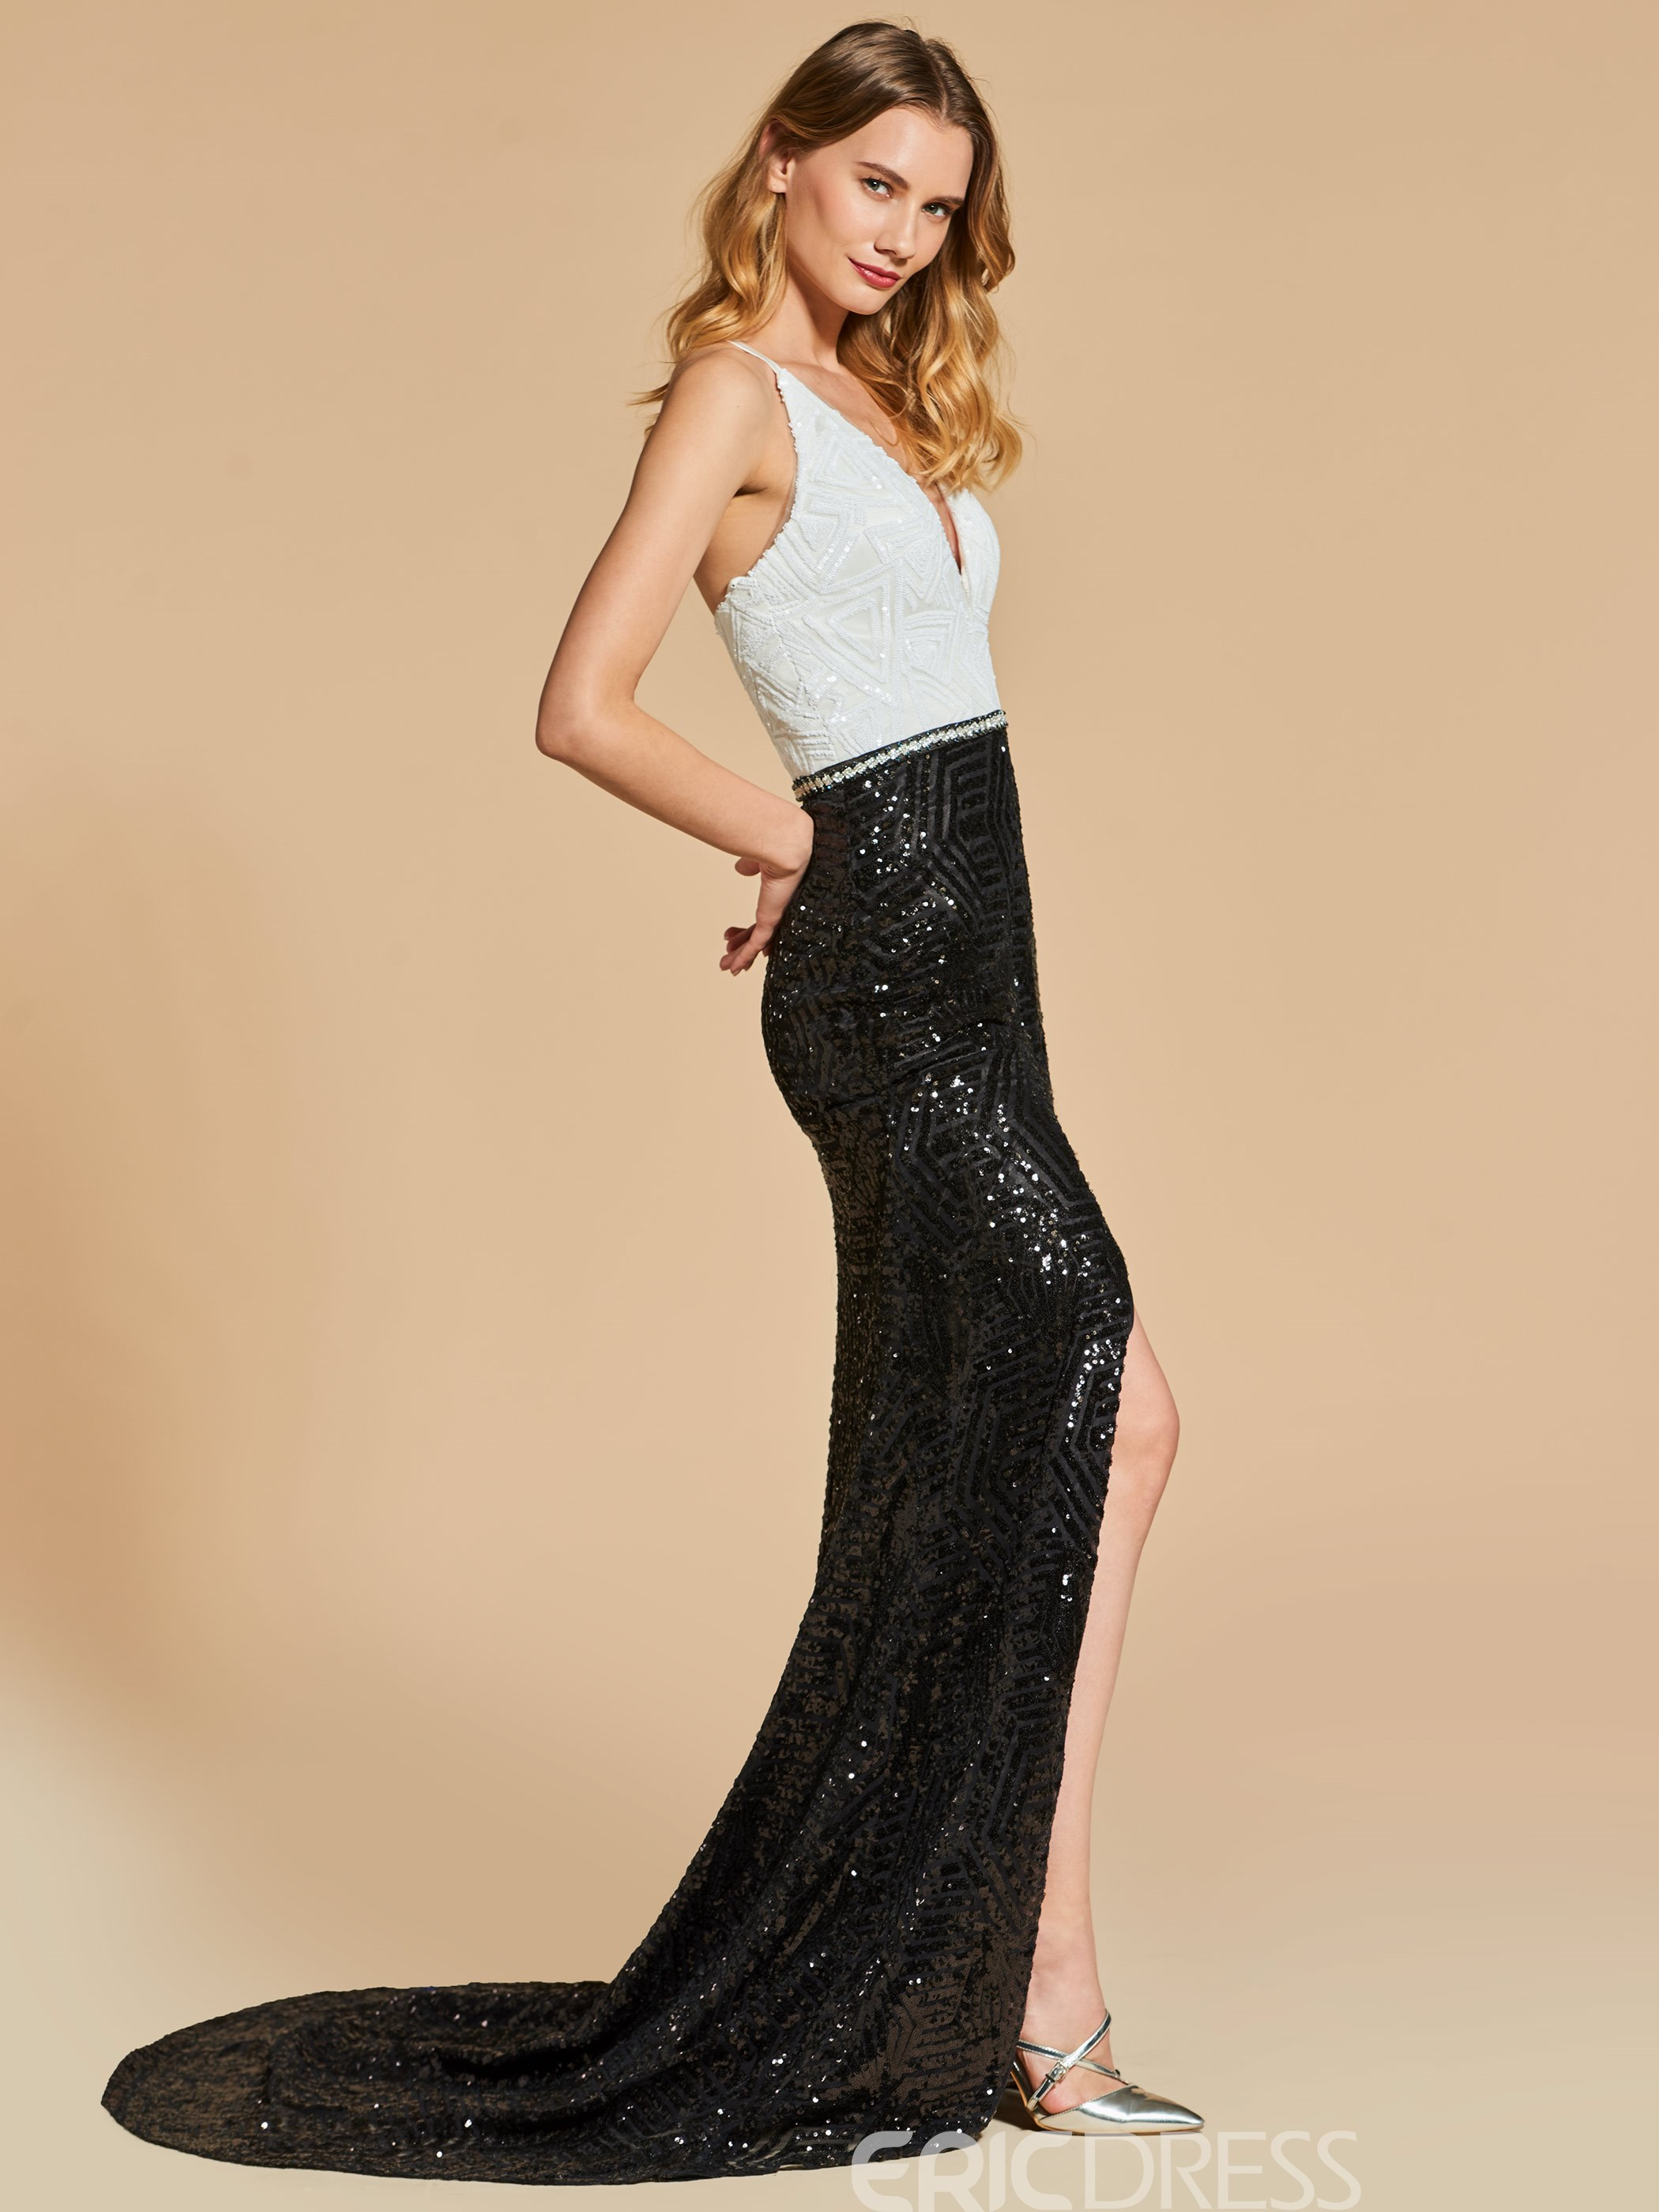 Ericdress V Neck Sequin Black and White Mermaid Evening Dress With Side Slit 13099478